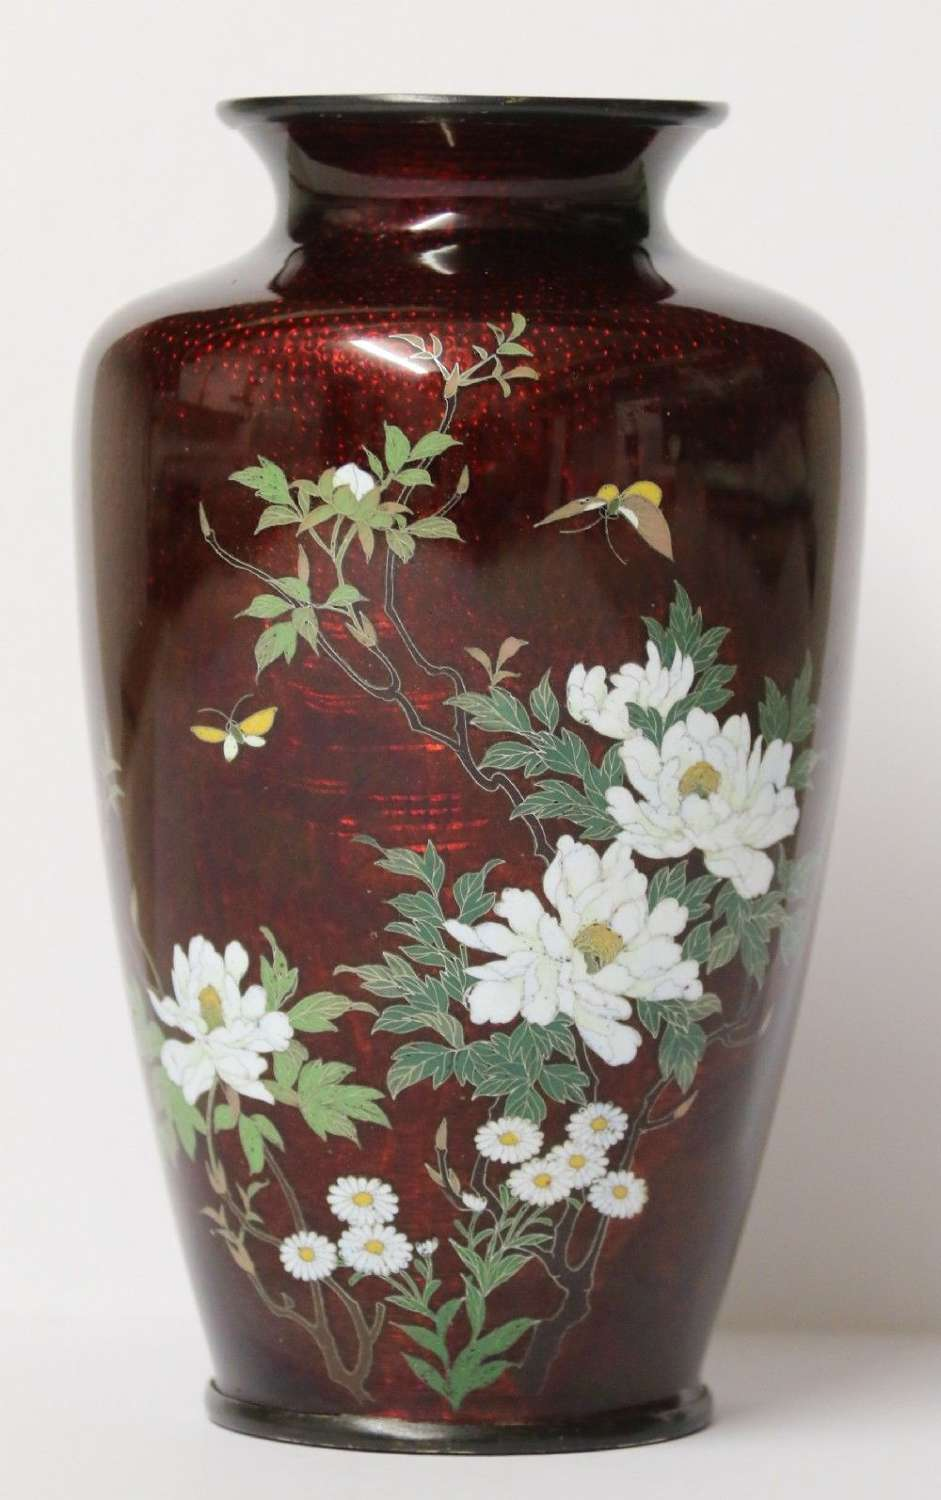 A Fine Japanese Cloisonné Vase By The Ando Company.